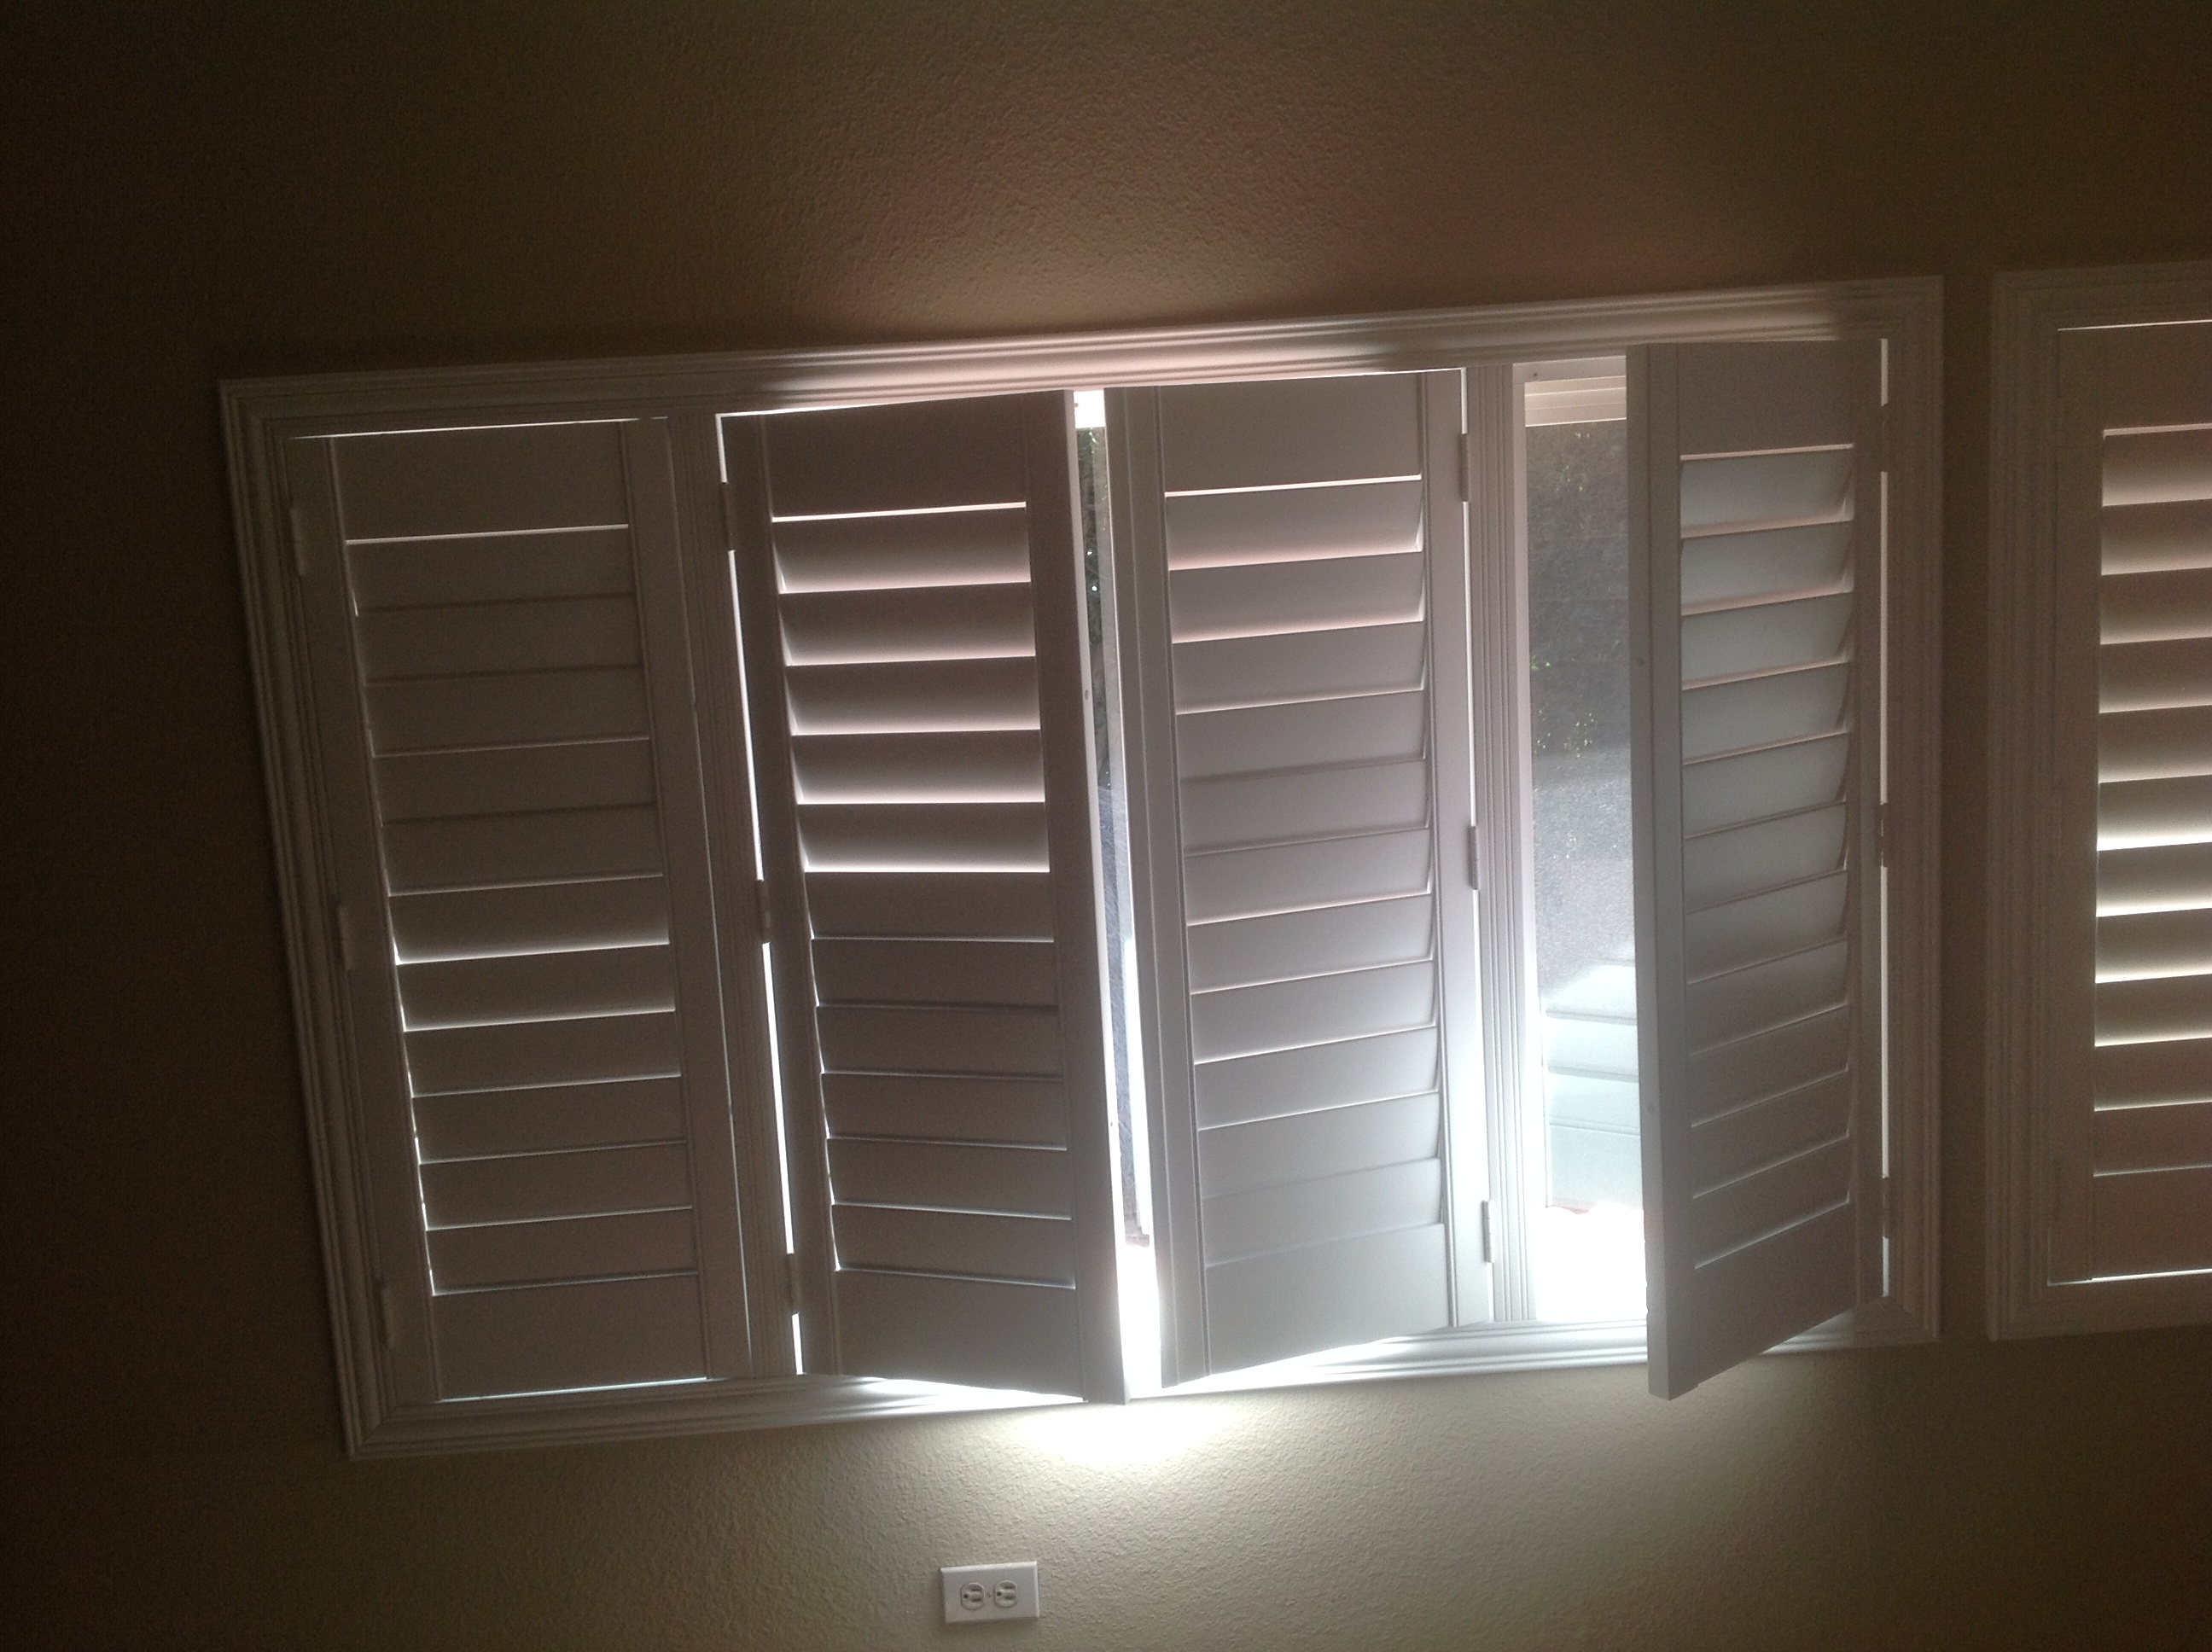 Shutter Design Villa Blind And Shutter